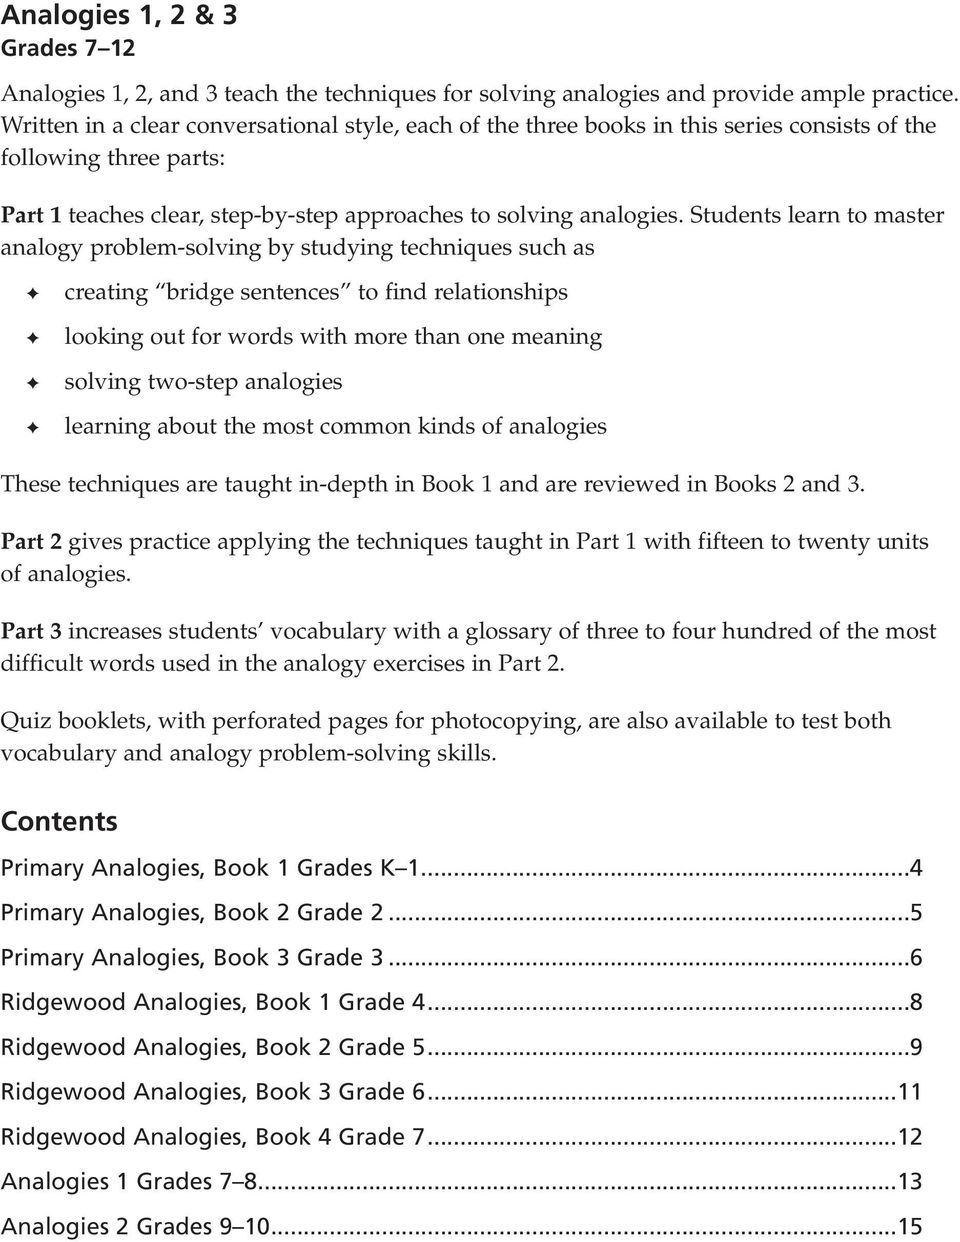 hight resolution of Analogies. Sampler for grades K 12 EDUCATORS PUBLISHING SERVICE - PDF Free  Download